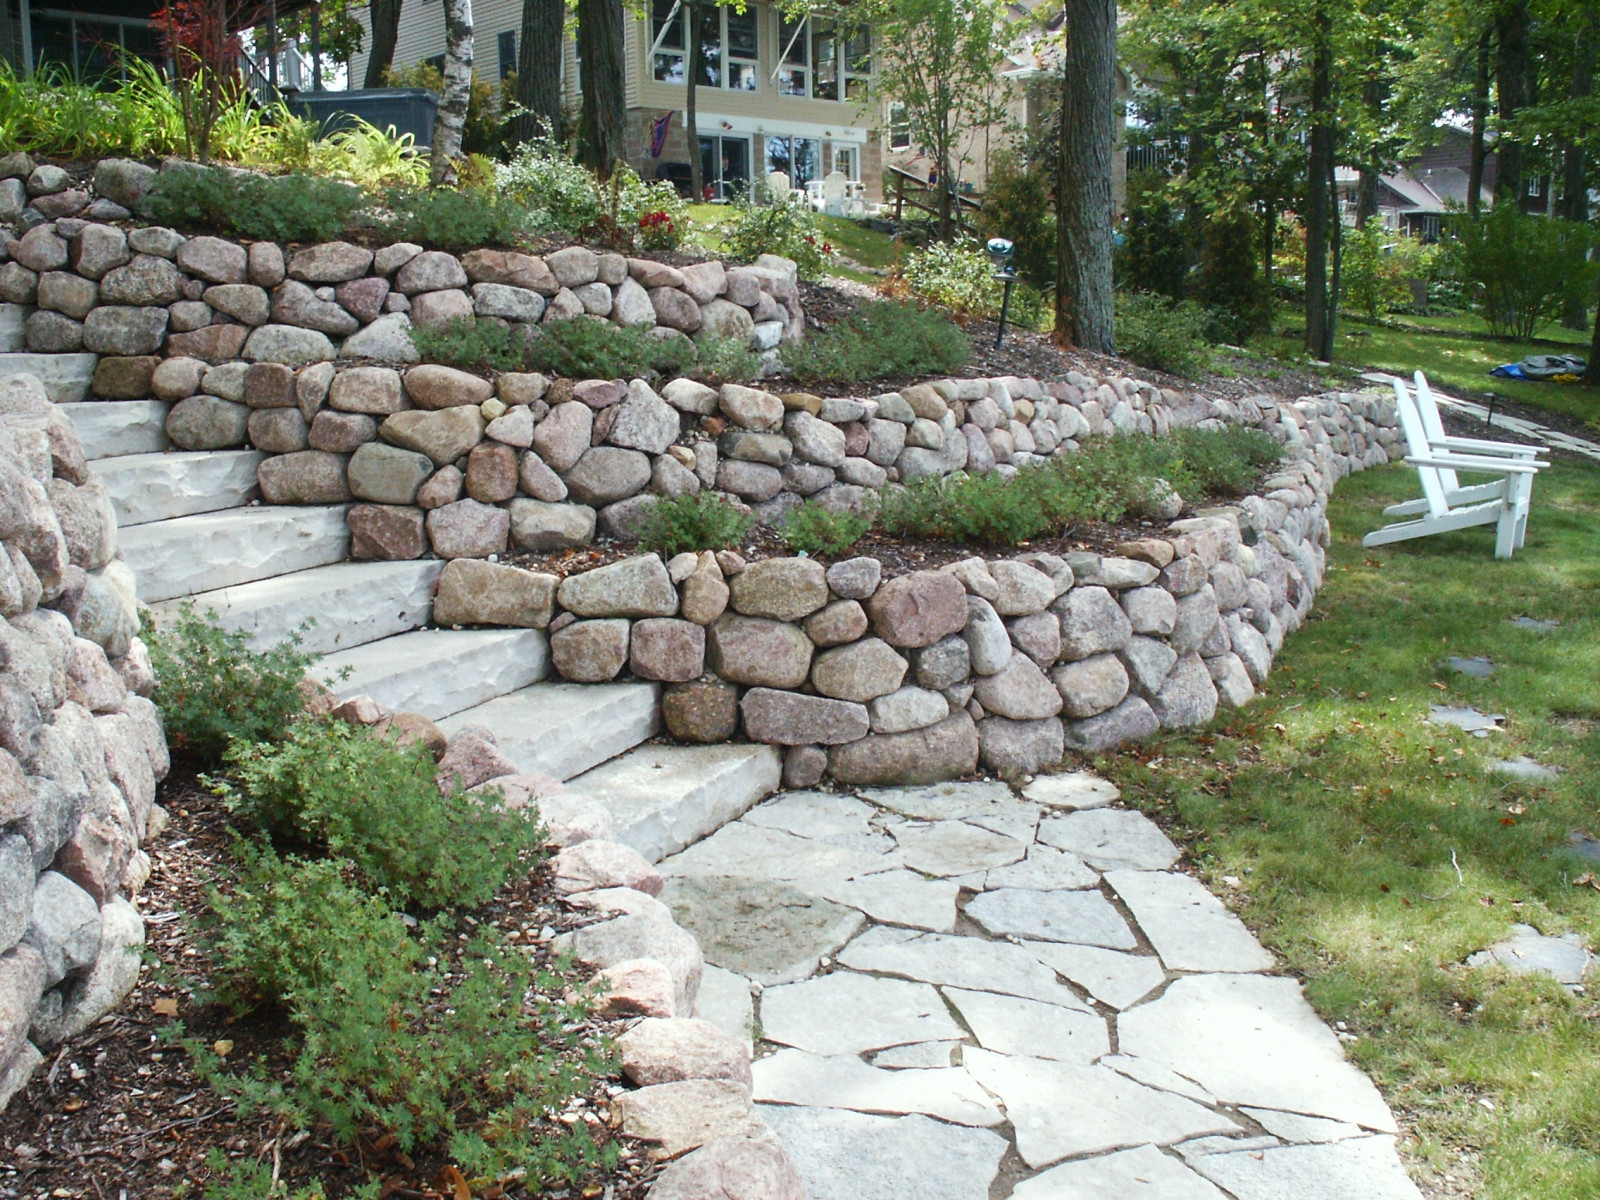 Retaining Walls And Outcroppings